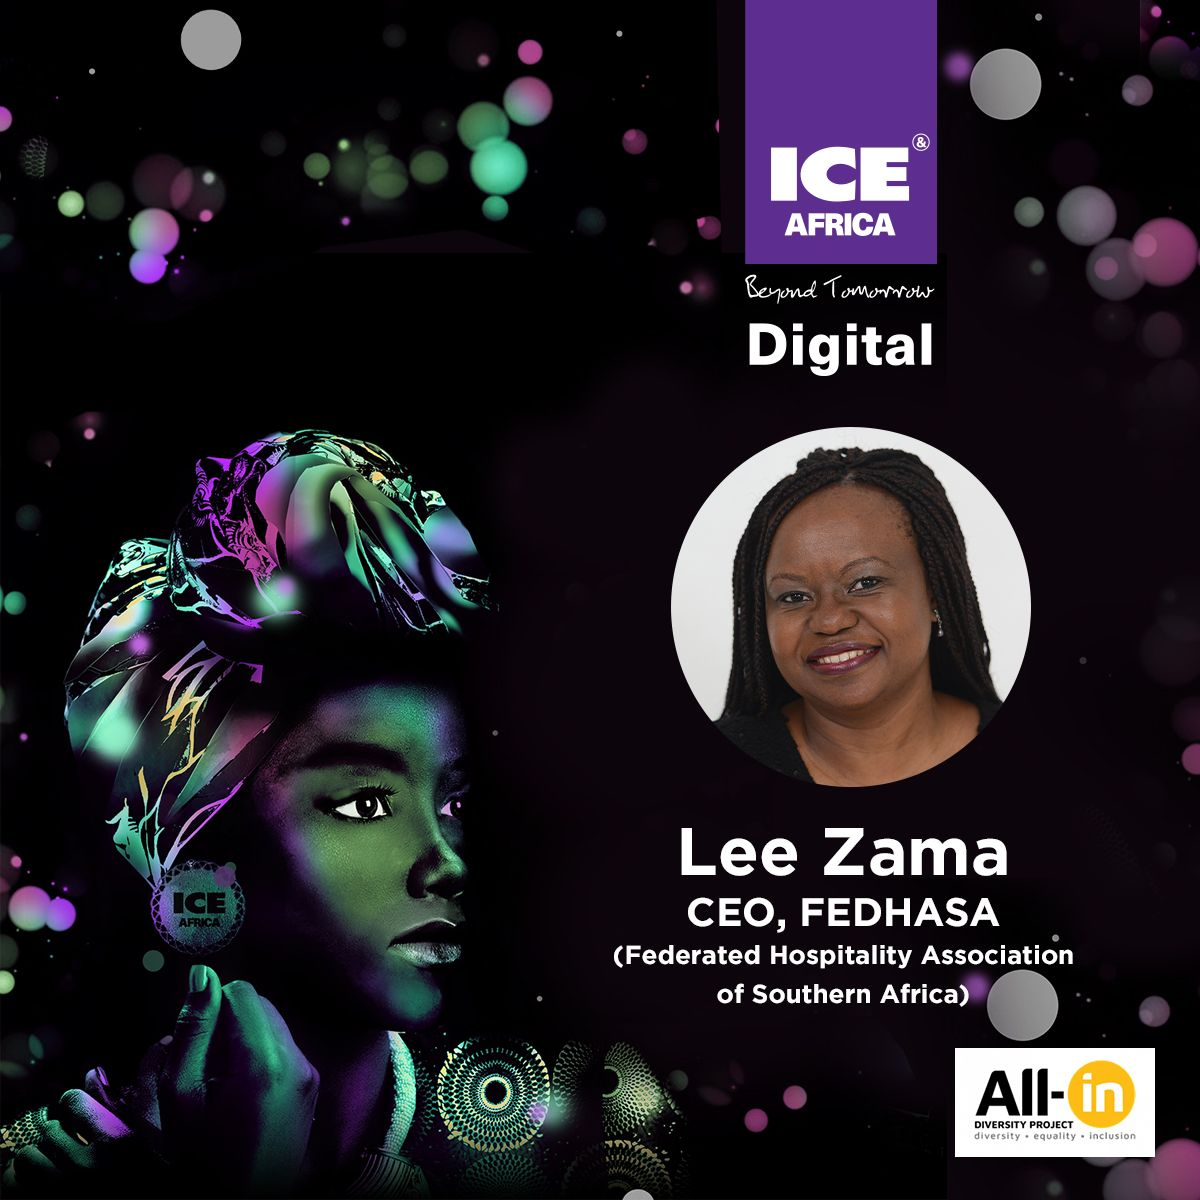 Women In Gaming: Meet This Phenomenal Women In Gaming the CEO of FEDHASA Ms. Lee Zama.